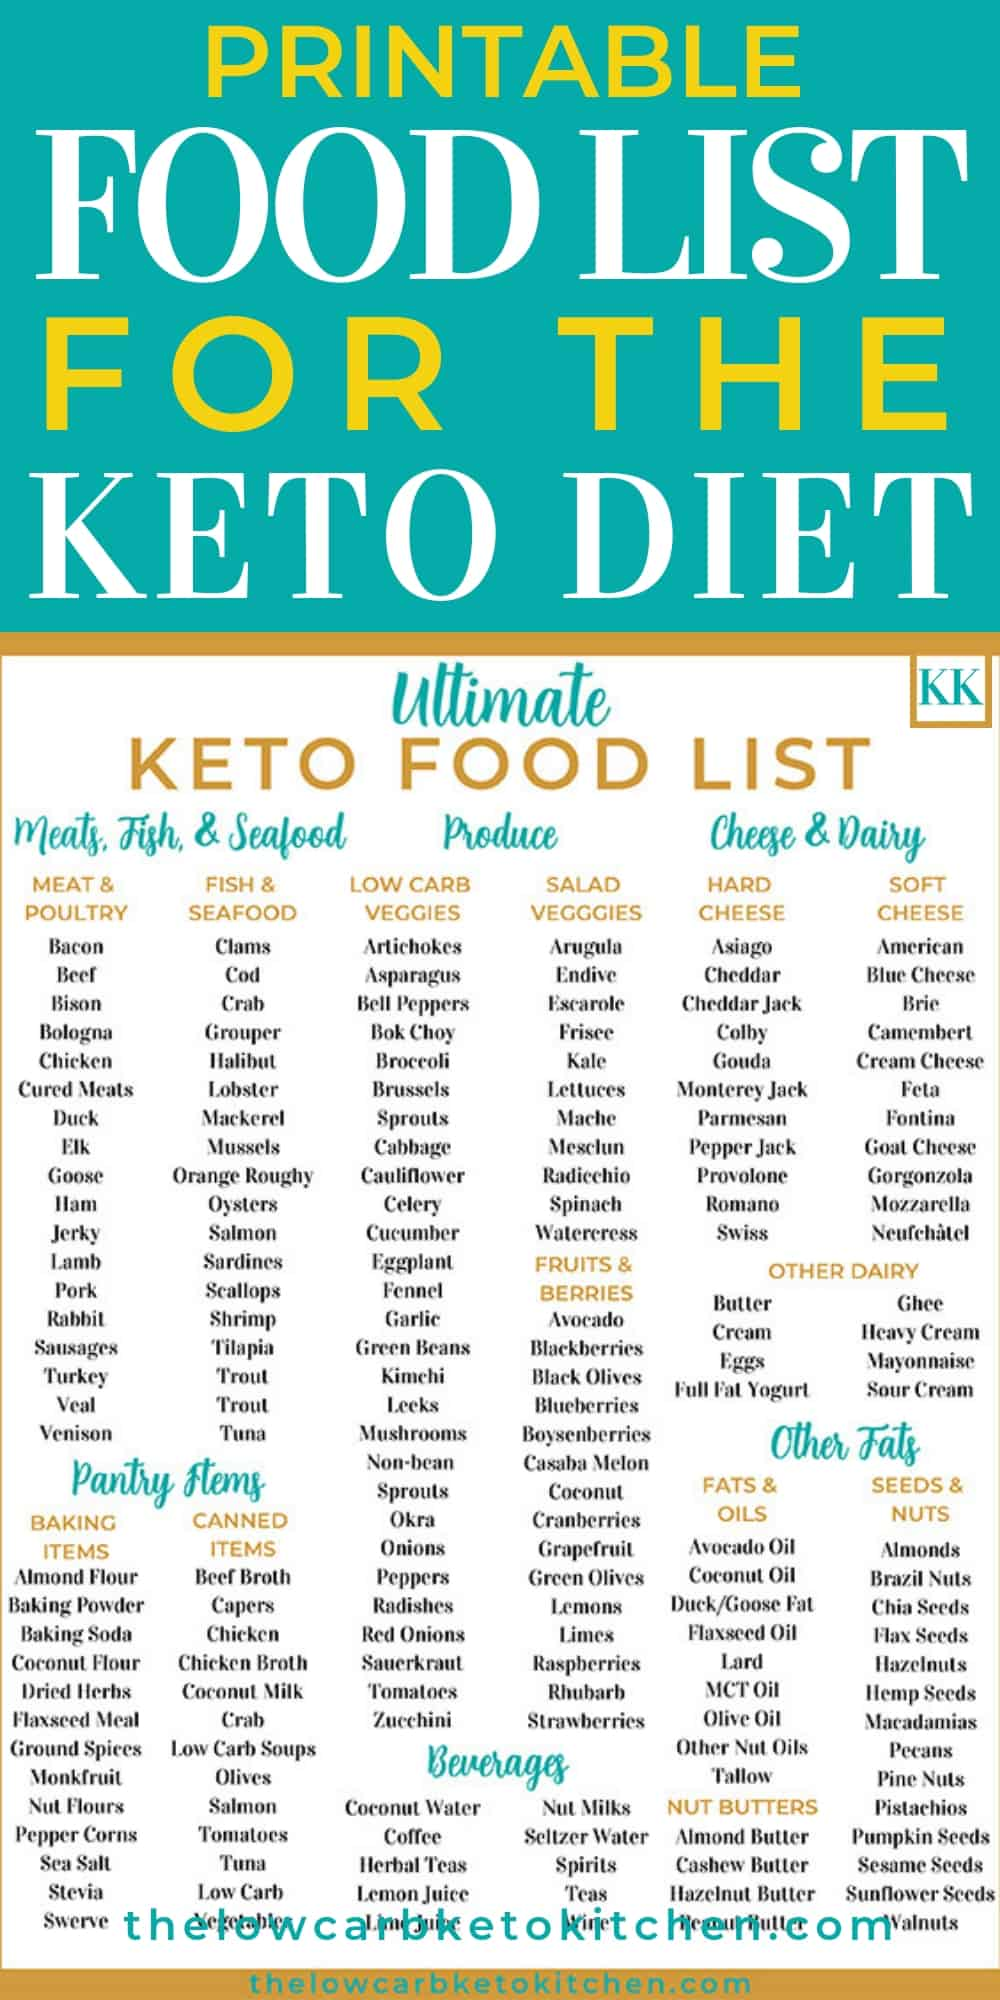 The Ultimate Keto Food List With Printable